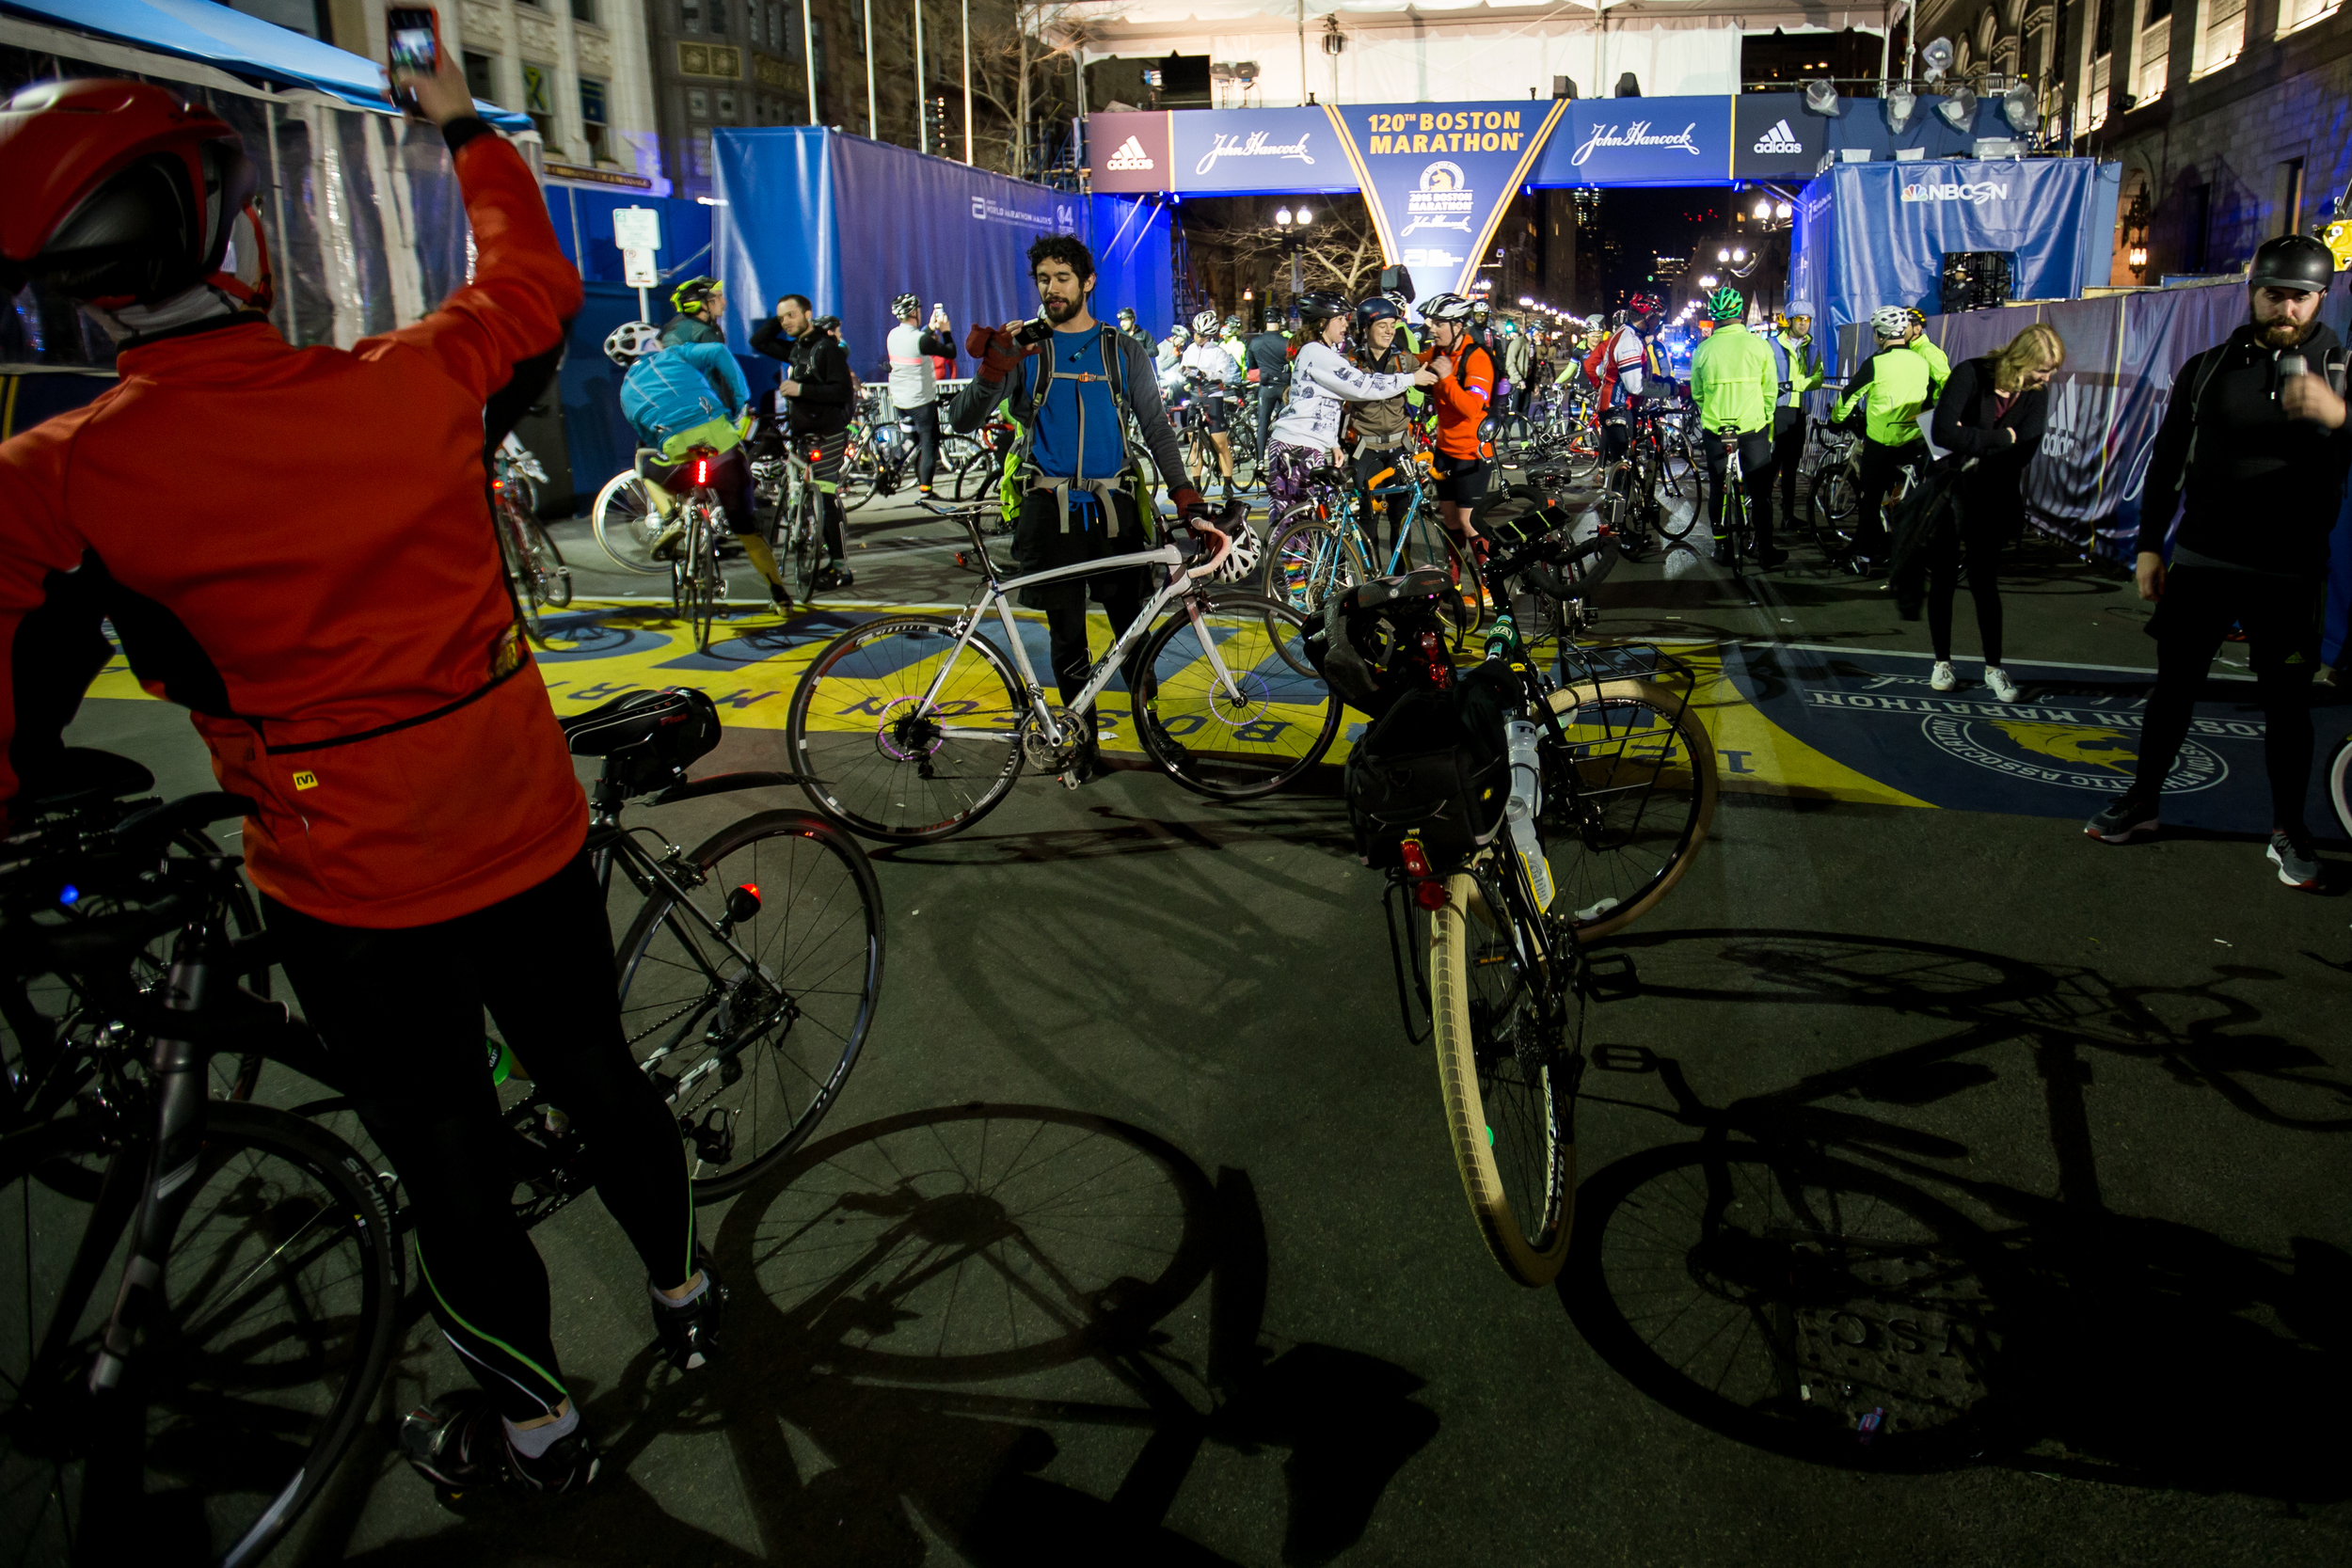 Participants rest and take photos after completing the Midnight Marathon Bike Ride, which begins at midnight on April 18 in Hopkington, Mass., and traverses the route of the Boston Marathon.